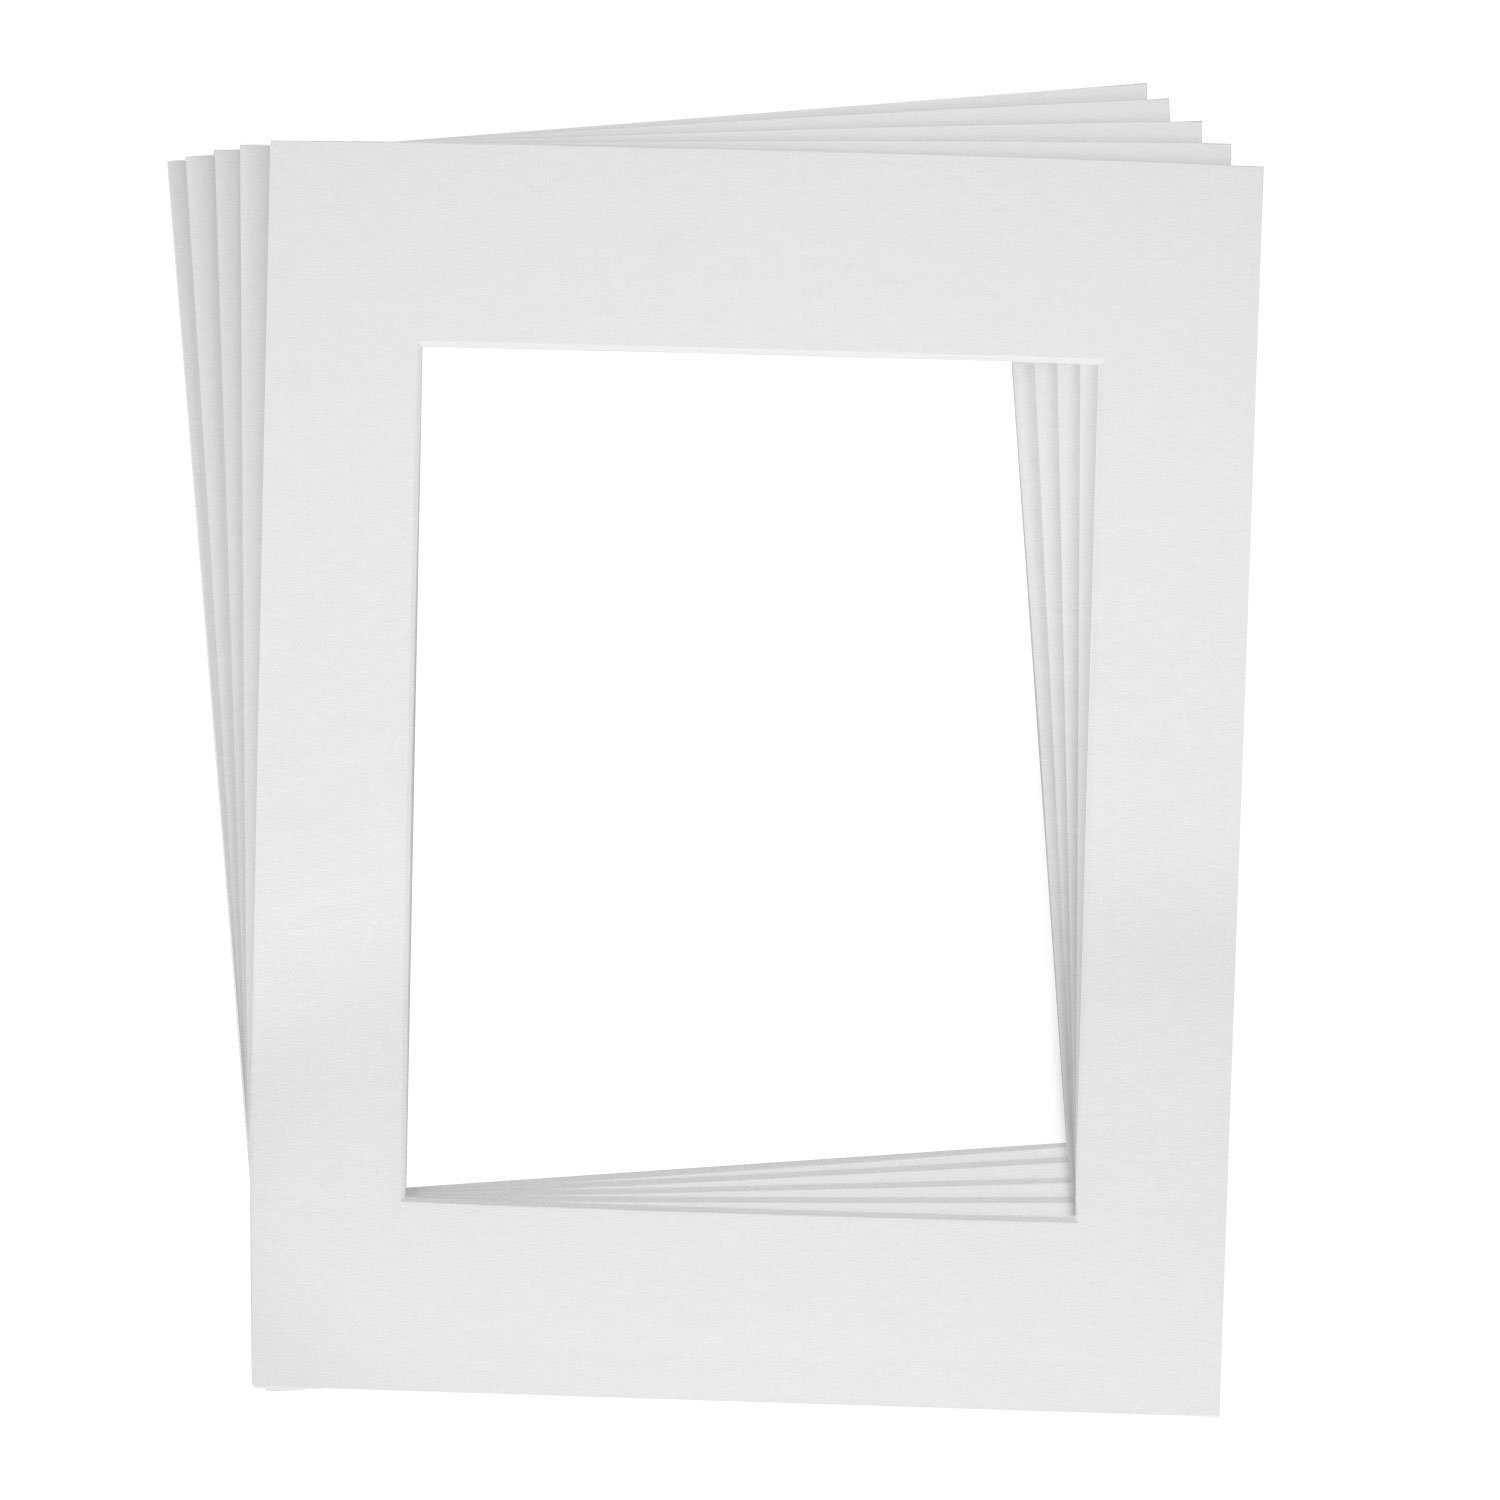 Golden State Art Pack of 5, 16x20 White Picture Mats Mattes with White Core Bevel Cut for 11x14 Photo + Backing + Bags